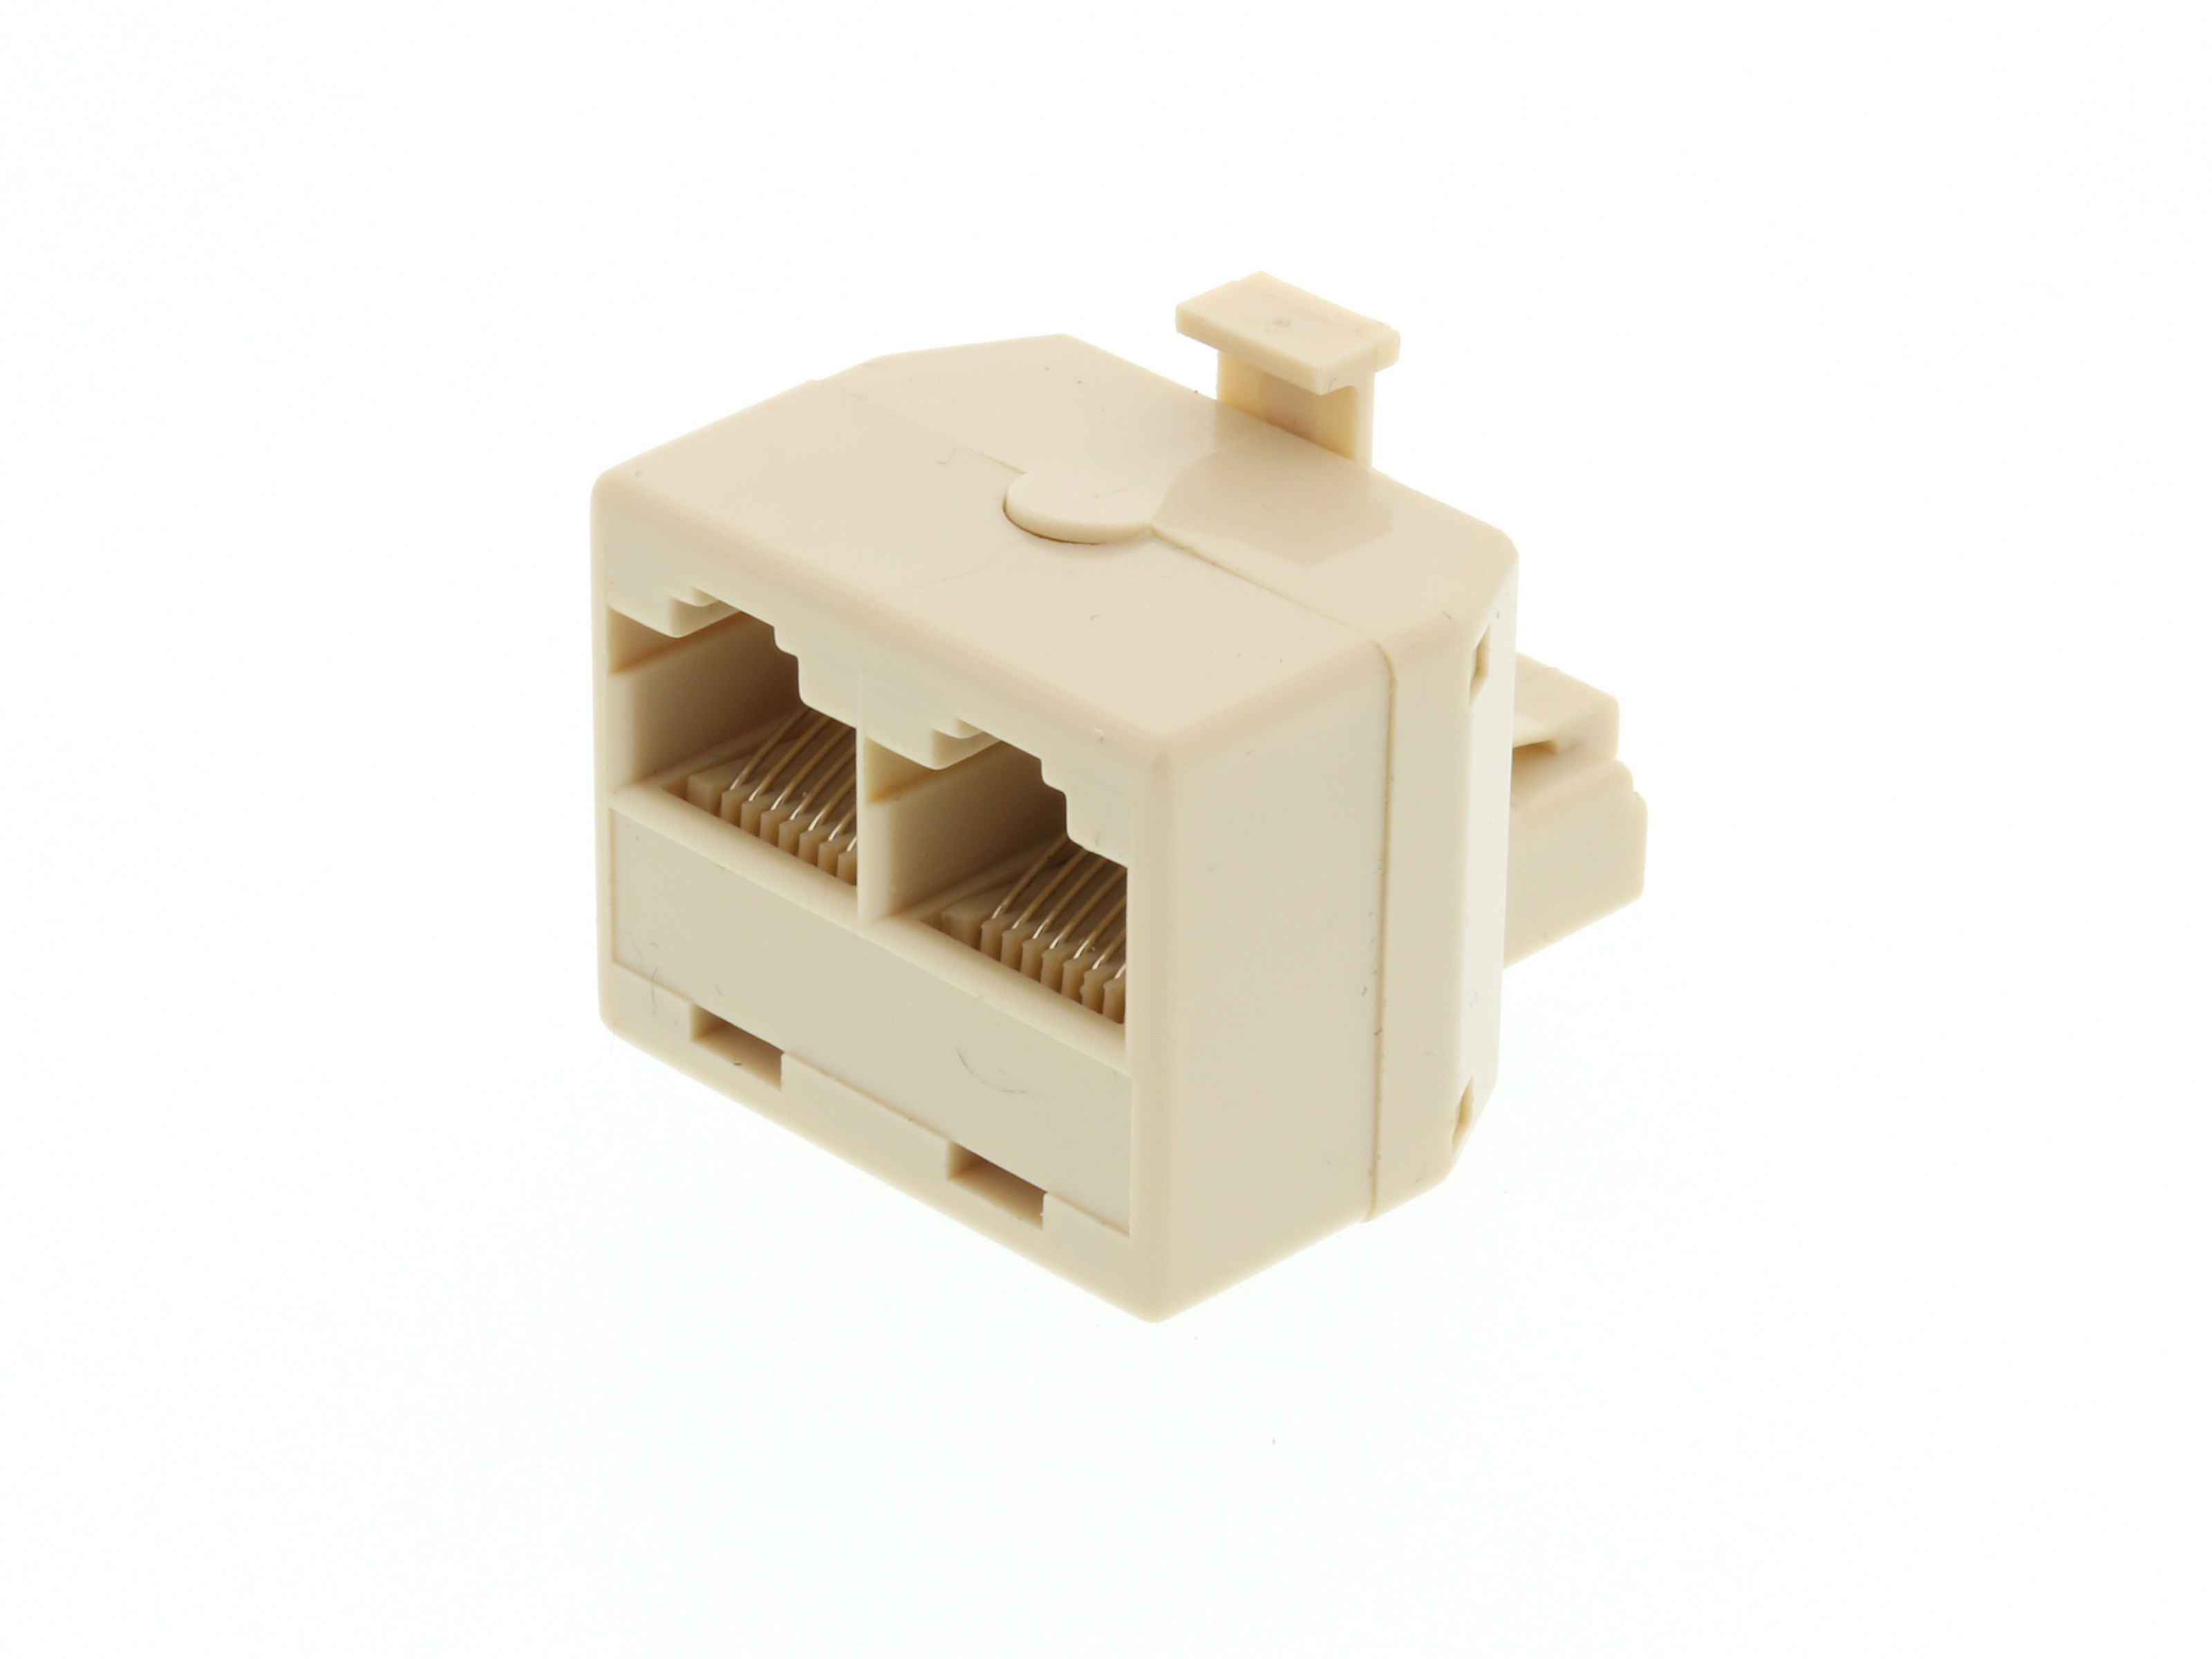 Modular Voice T Adapter 1 Male To 2 Female Rj45 8p8c For 8 Wire 4 Way Switch Box Picture Of